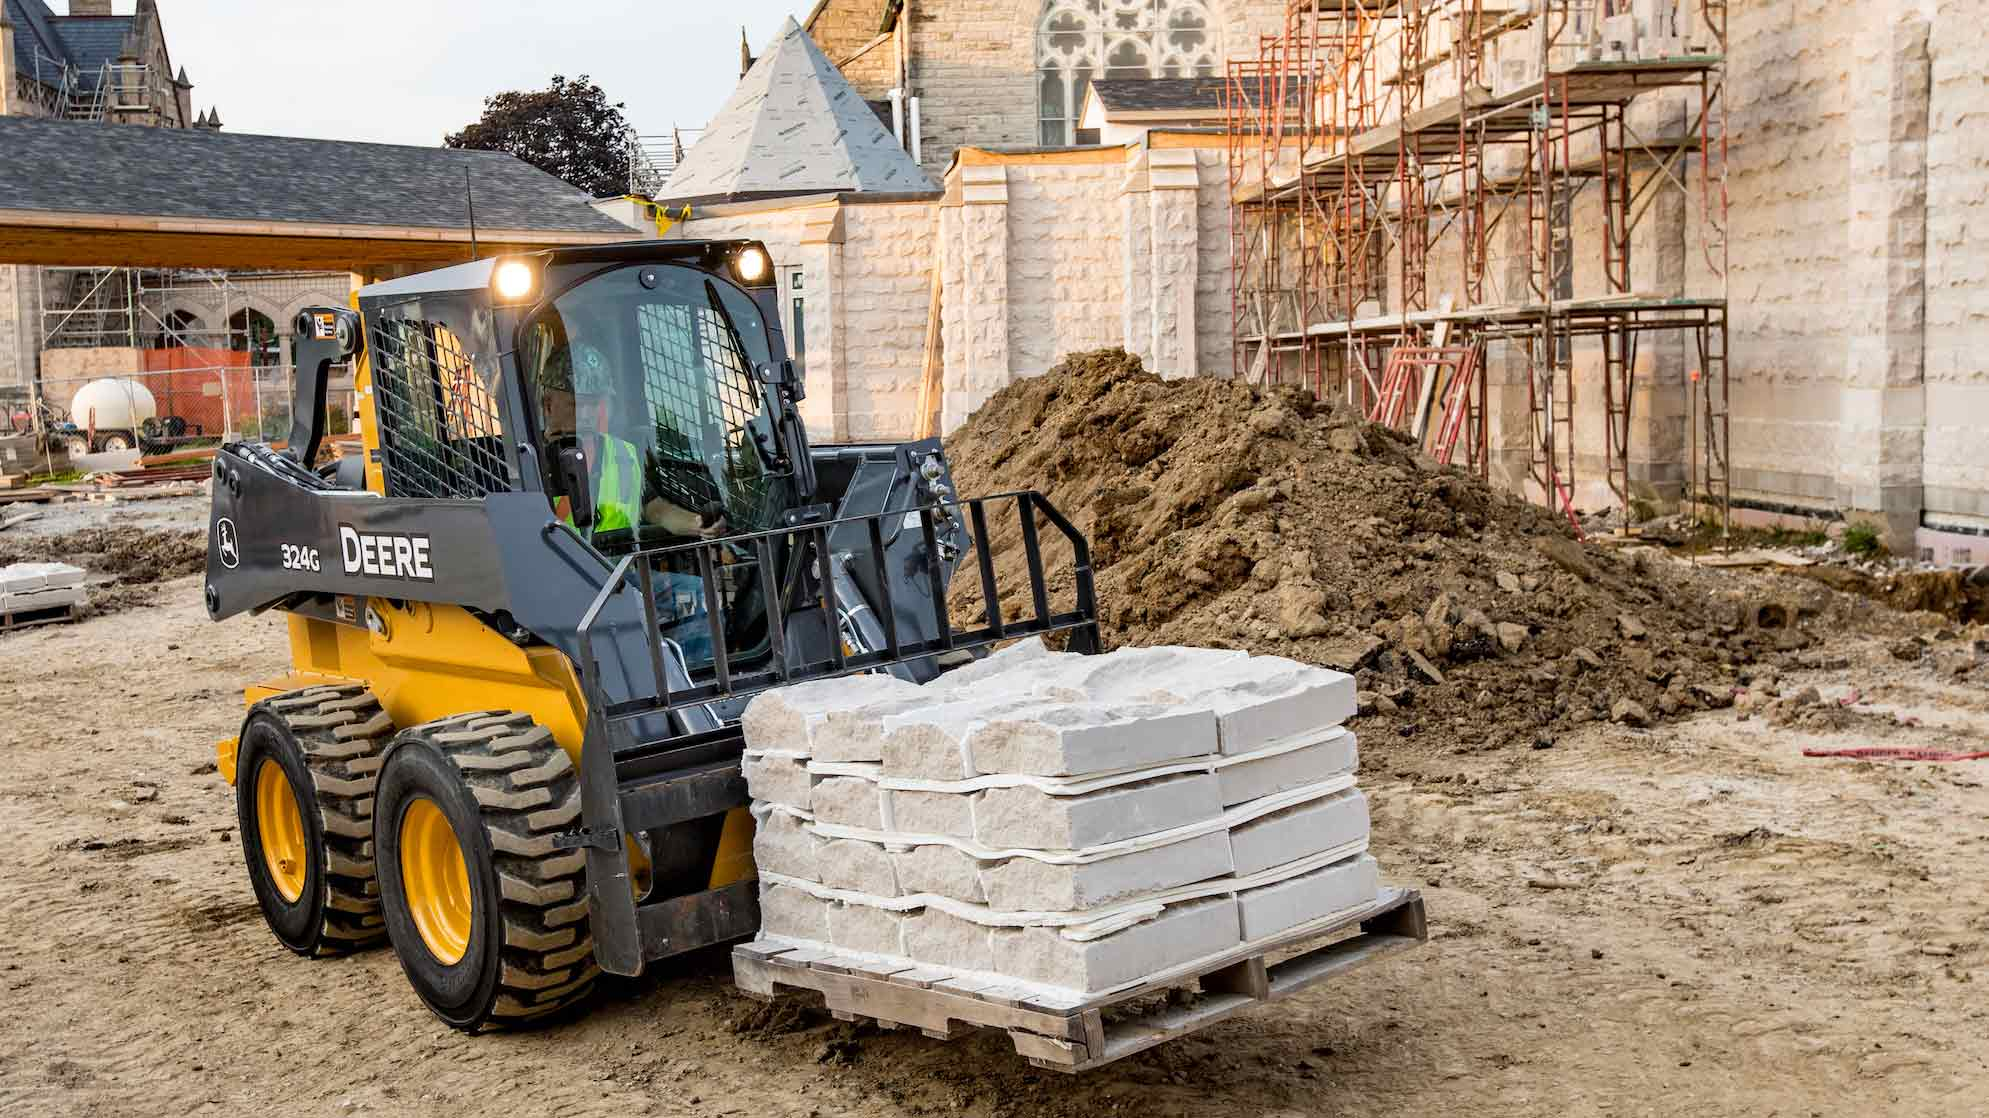 G-Series Skid Steers & CTL Lineup with Mid-Frame Models